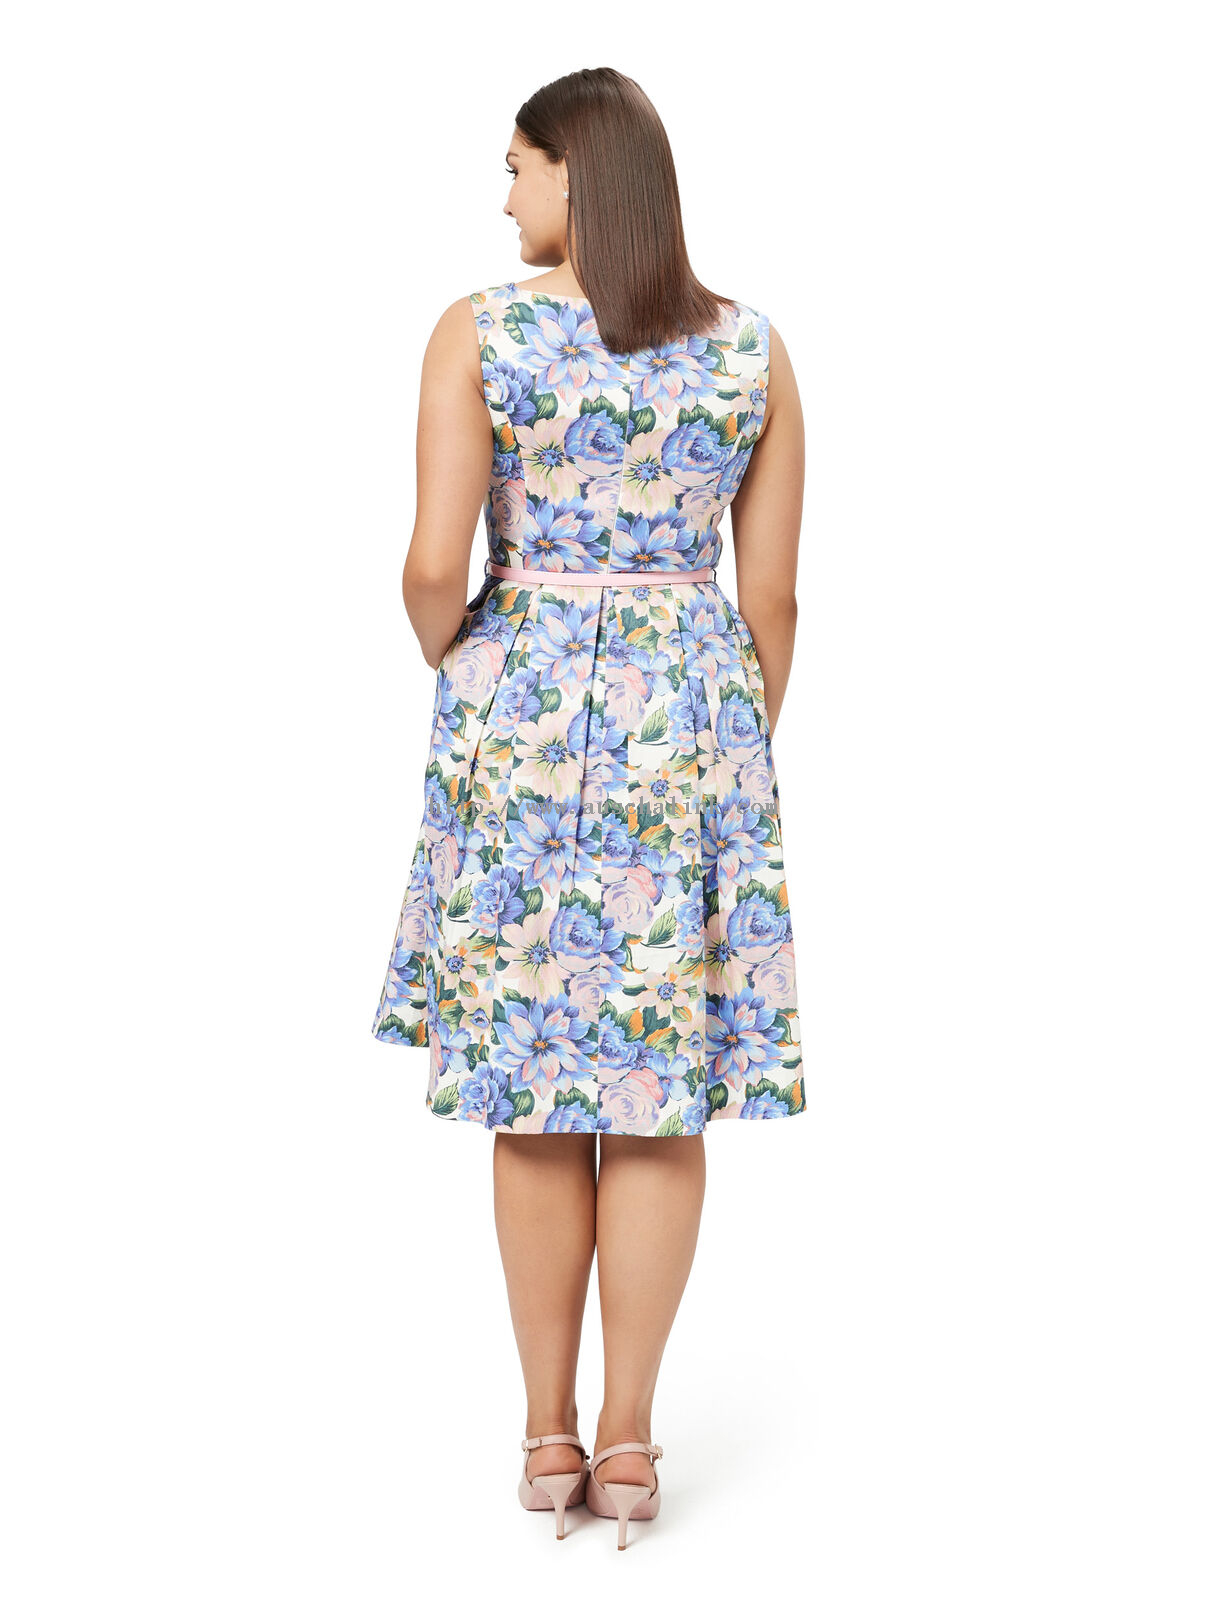 FANGIRL FLORAL PROM DRESS